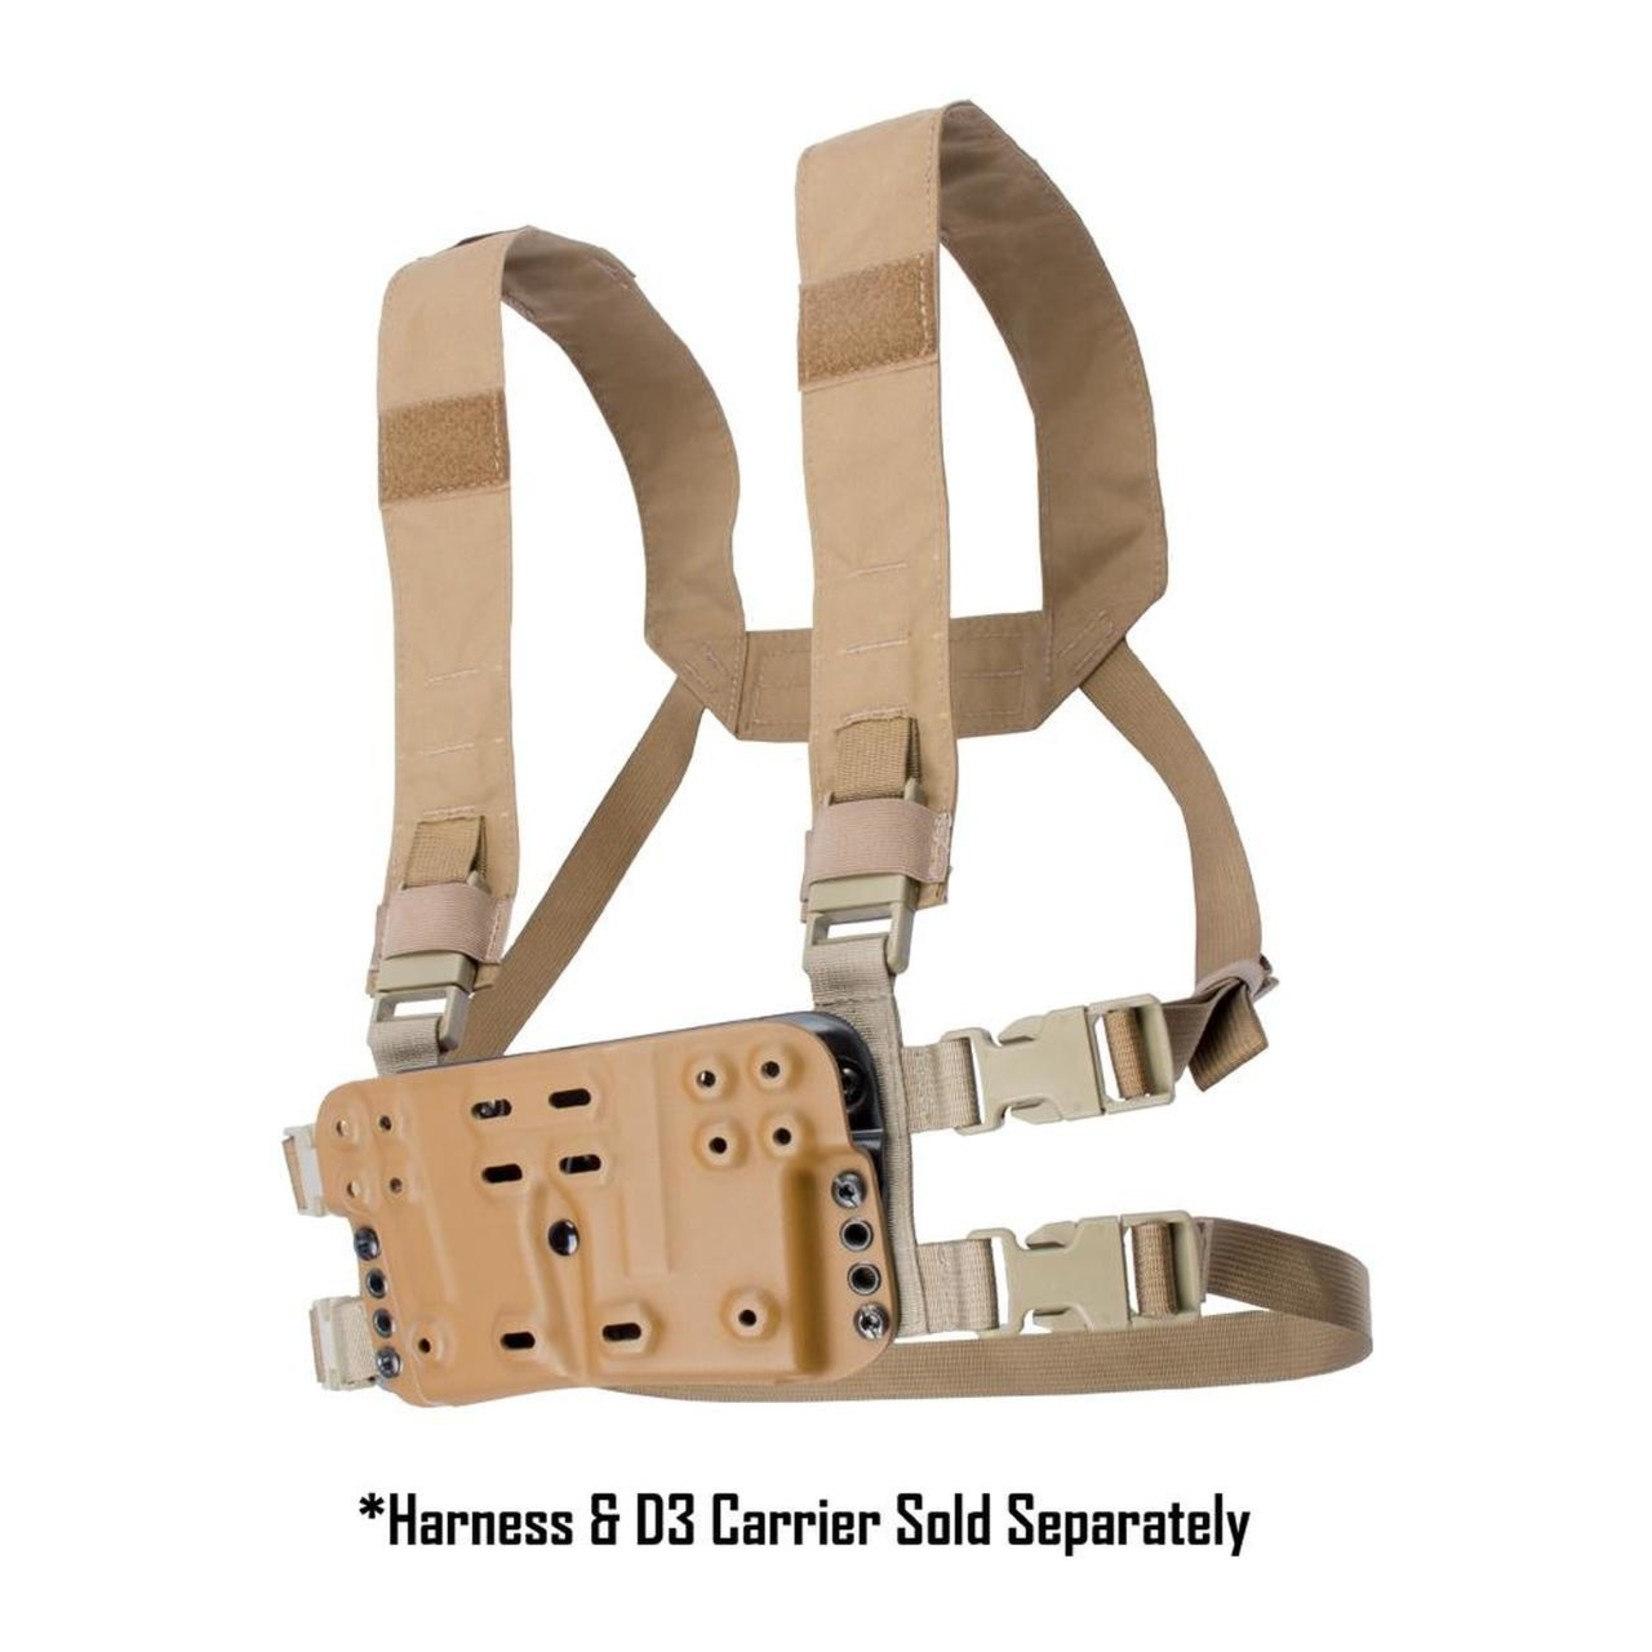 G-CODE D3 CARRIER SHOULDER HARNESS ADAPTER